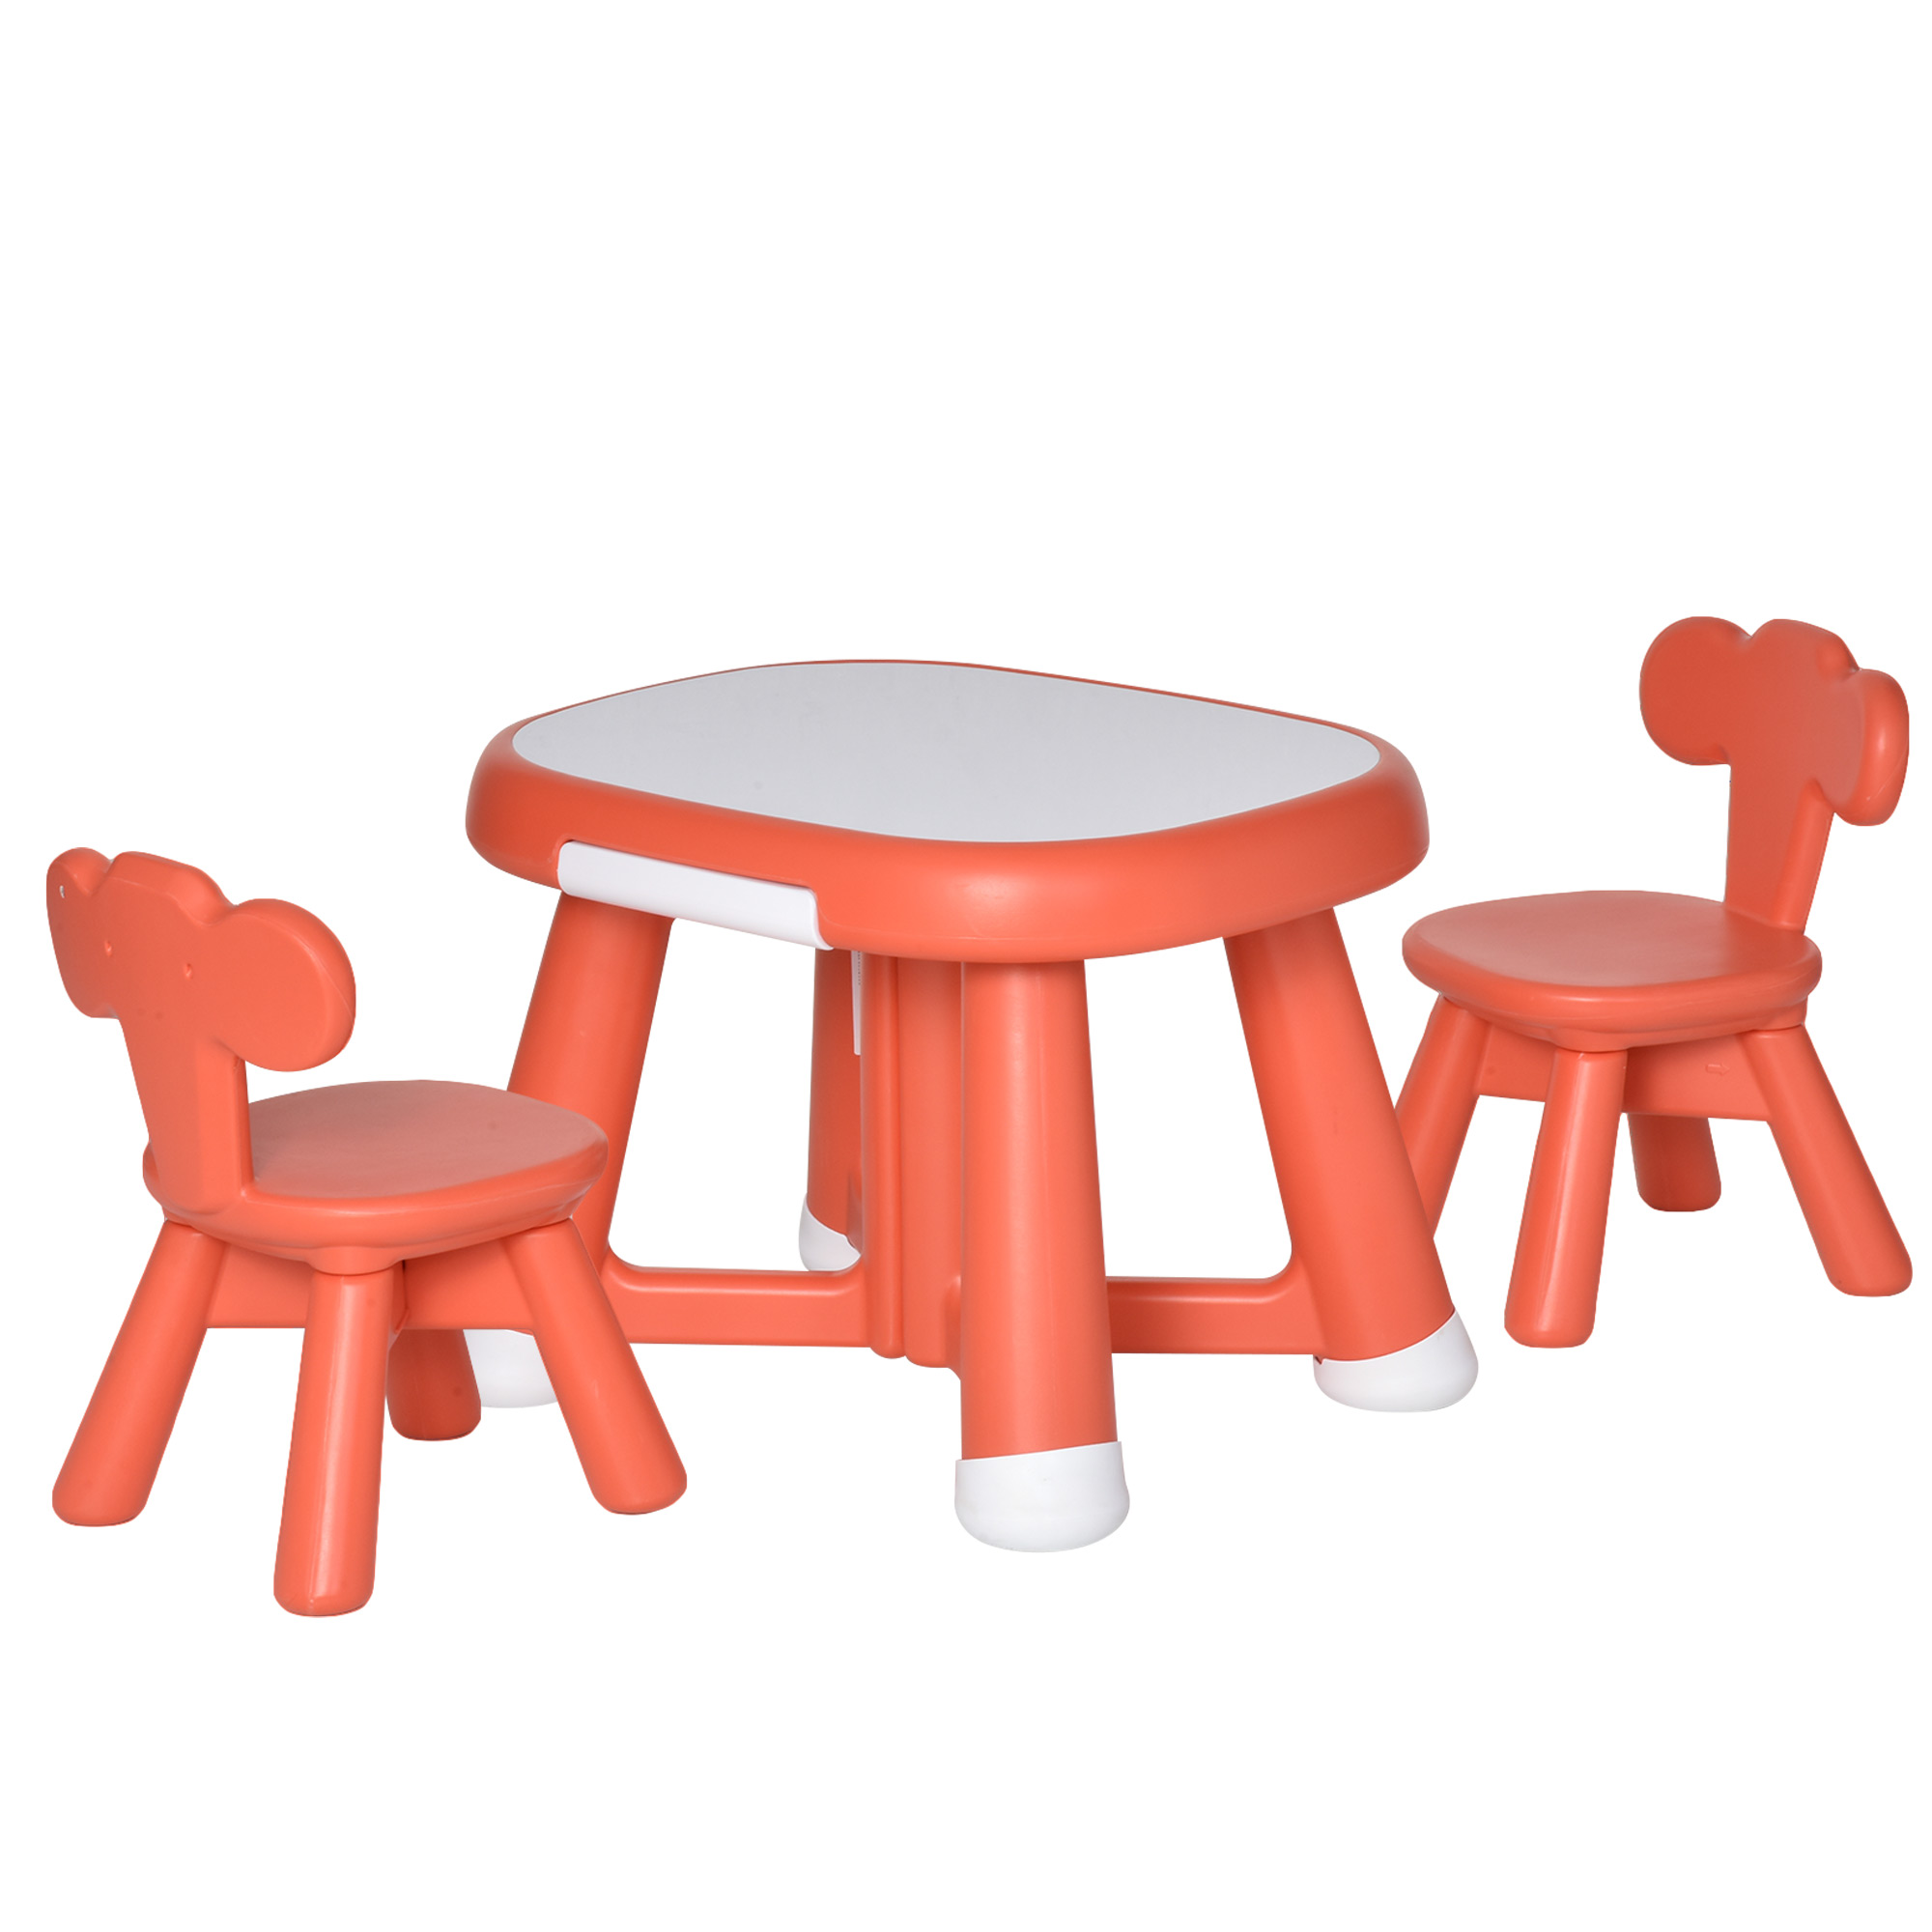 HOMCOM Kid Table and Chairs Set Writting Desk w/ Whiteboard Tabletop Equiped 2 Chairs for School Home Toddlers-Coral Red   Aosom IE